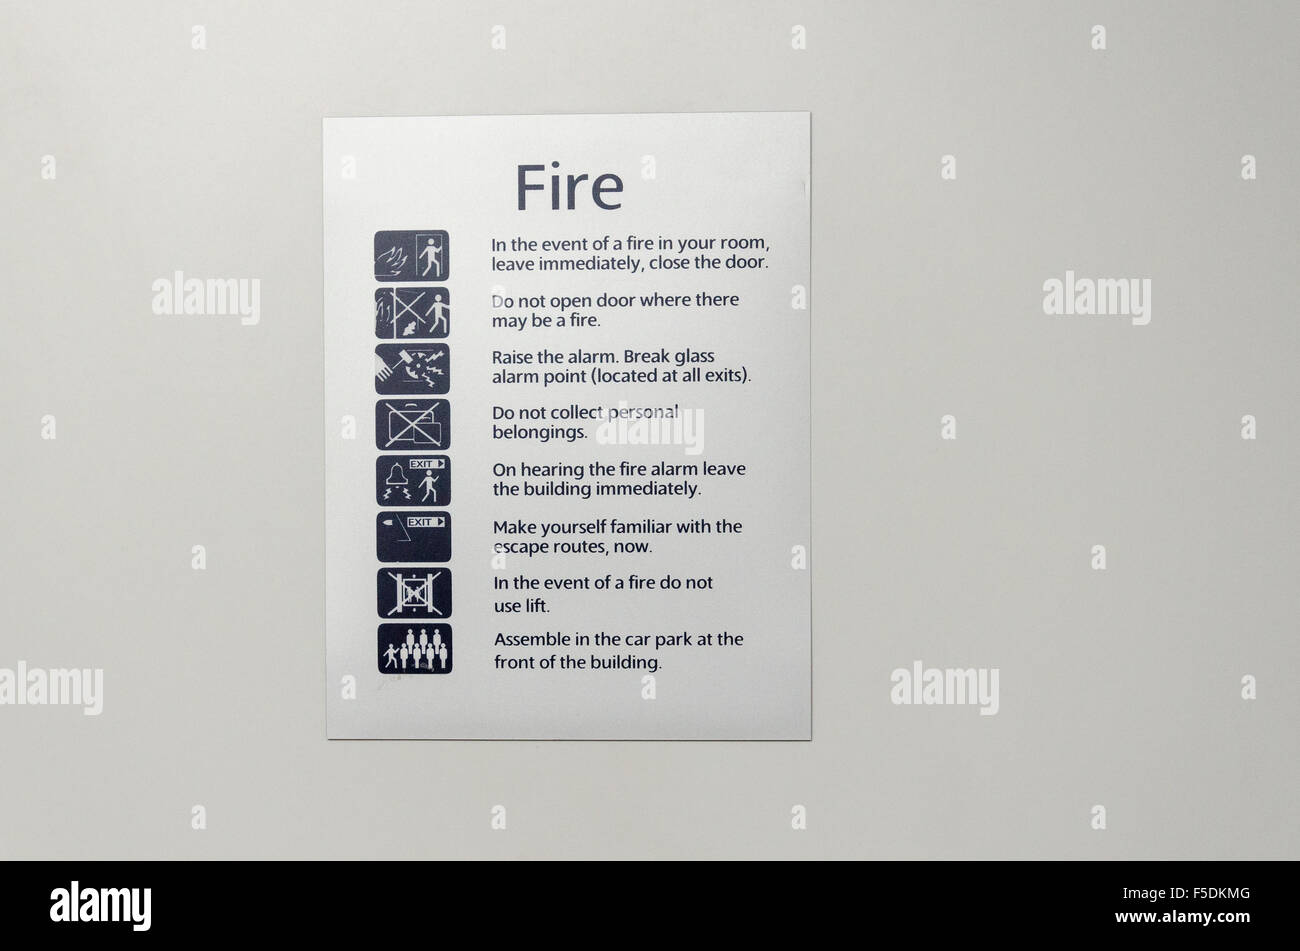 Fire safety and evacuation sign in a hotel - Stock Image